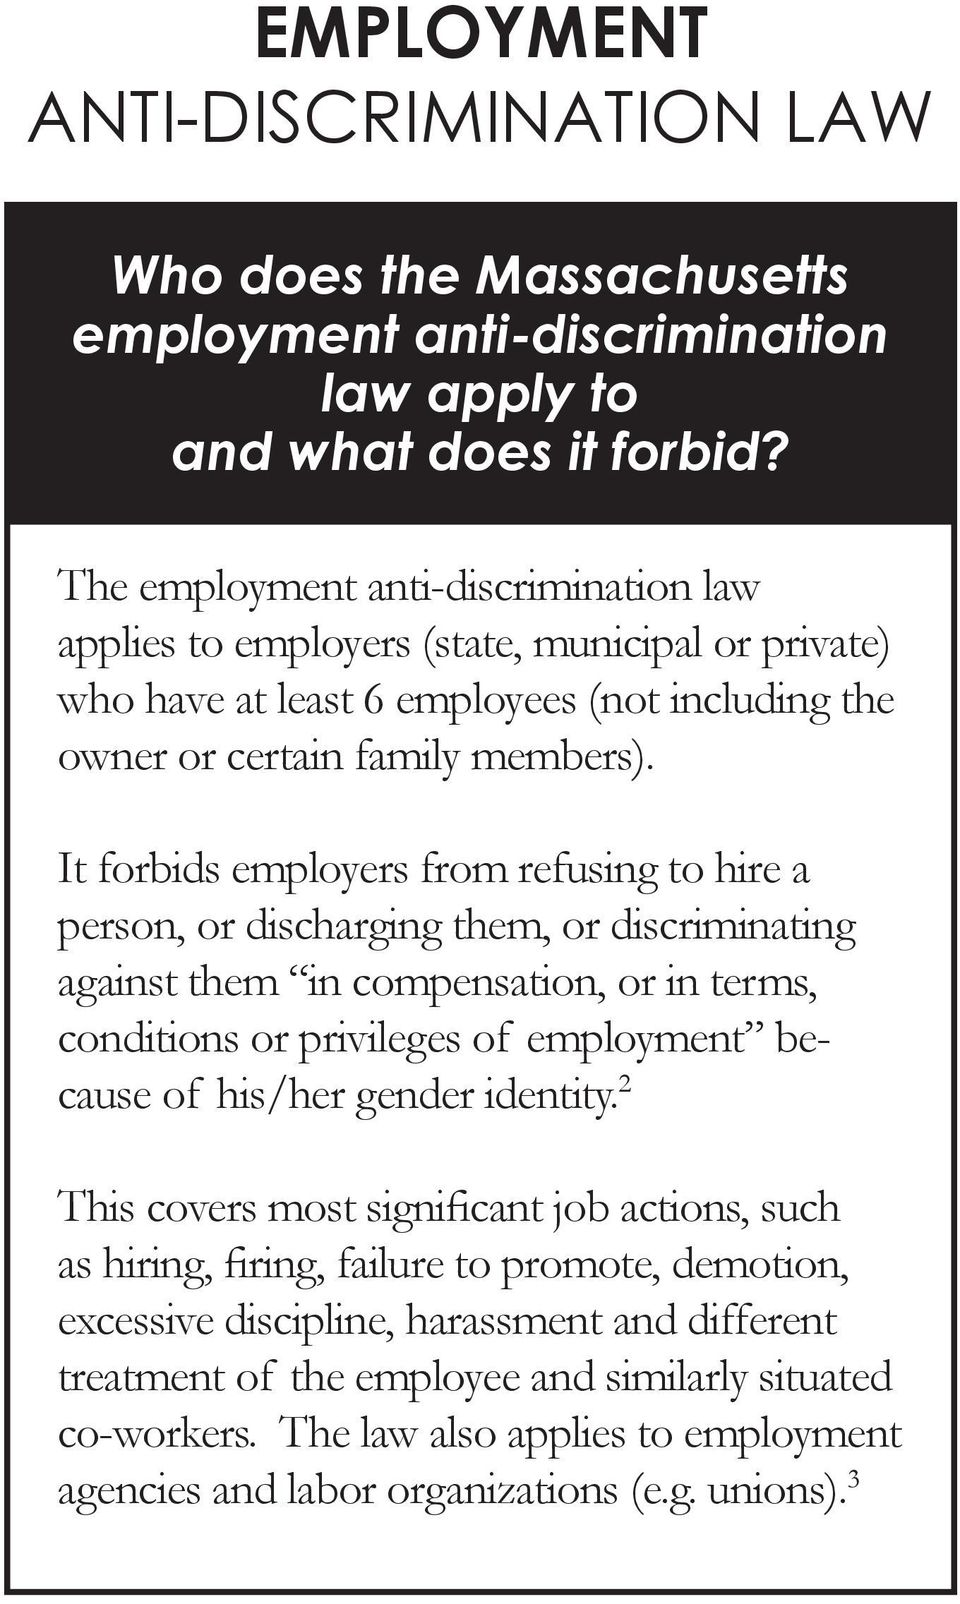 It forbids employers from refusing to hire a person, or discharging them, or discriminating against them in compensation, or in terms, conditions or privileges of employment because of his/her gender